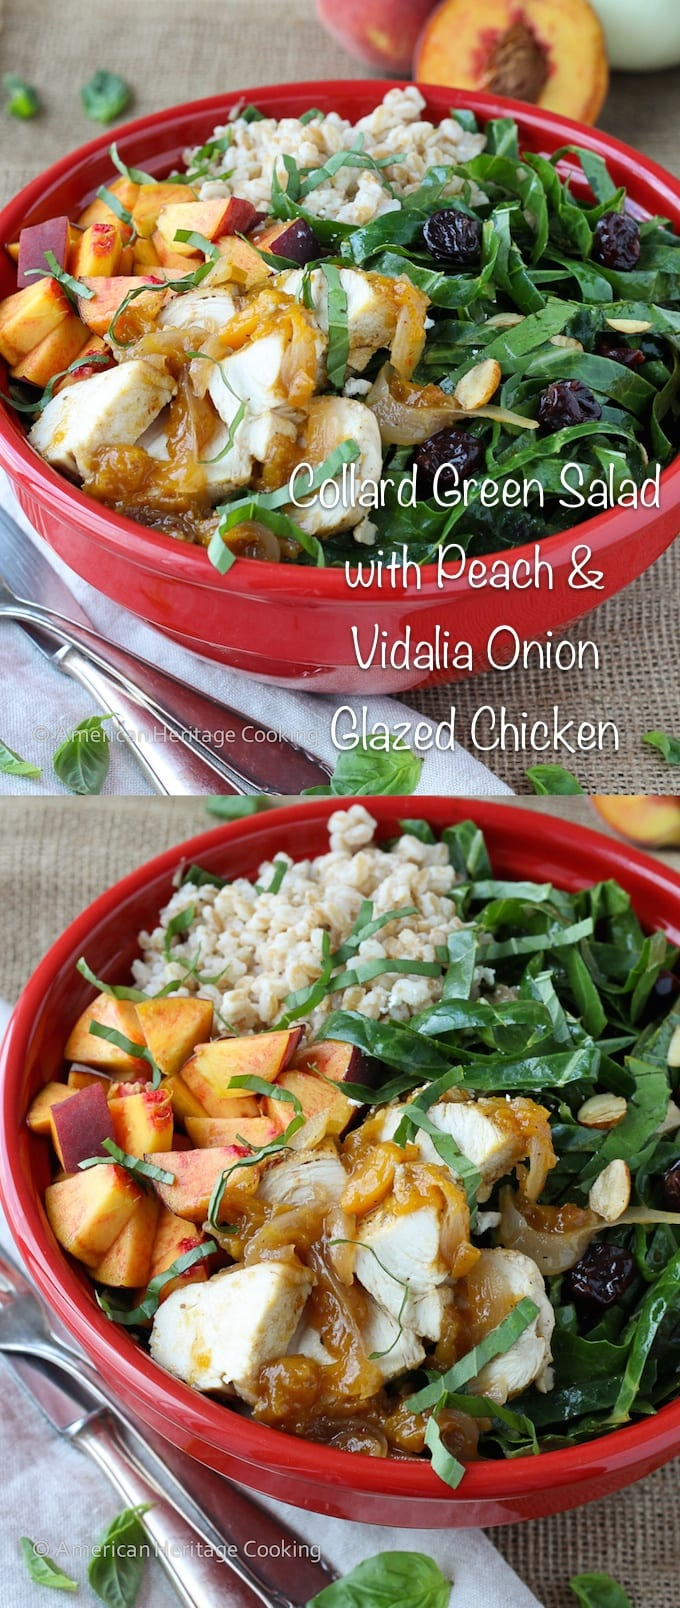 Collard Green Salad with Vidalia Onion Peach Glazed Chicken